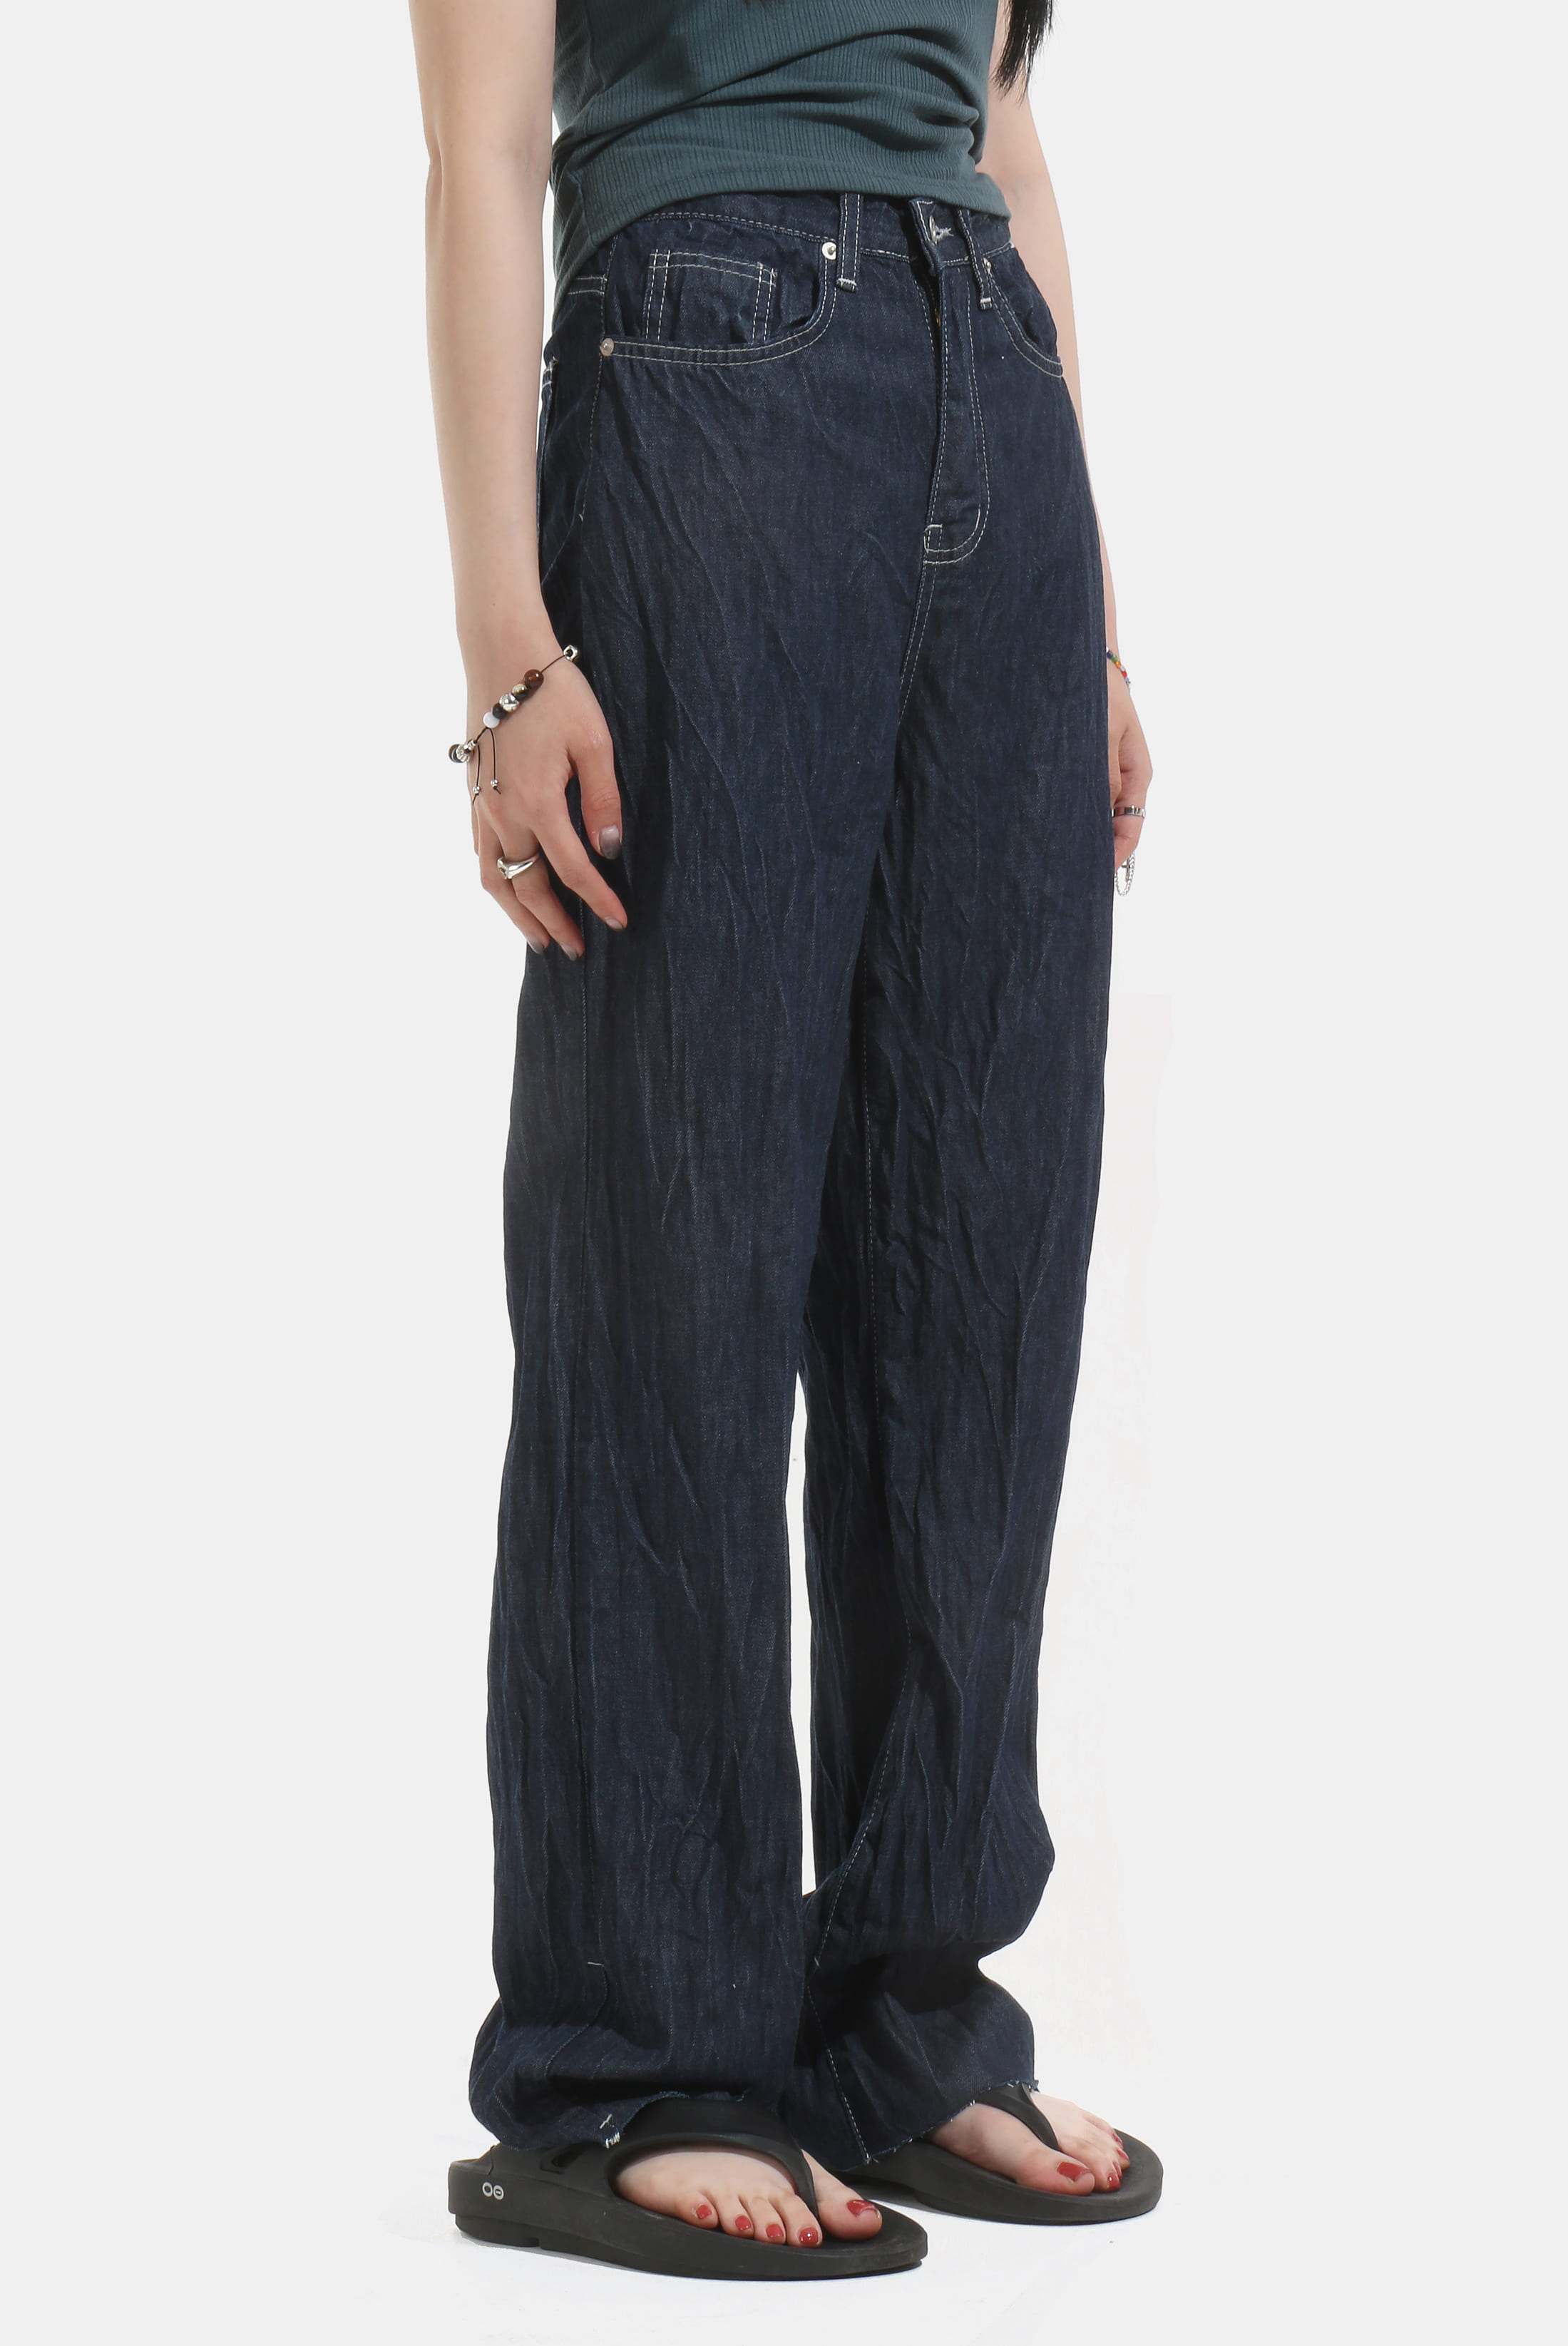 (W) Wrinkle_Denim Long Pants